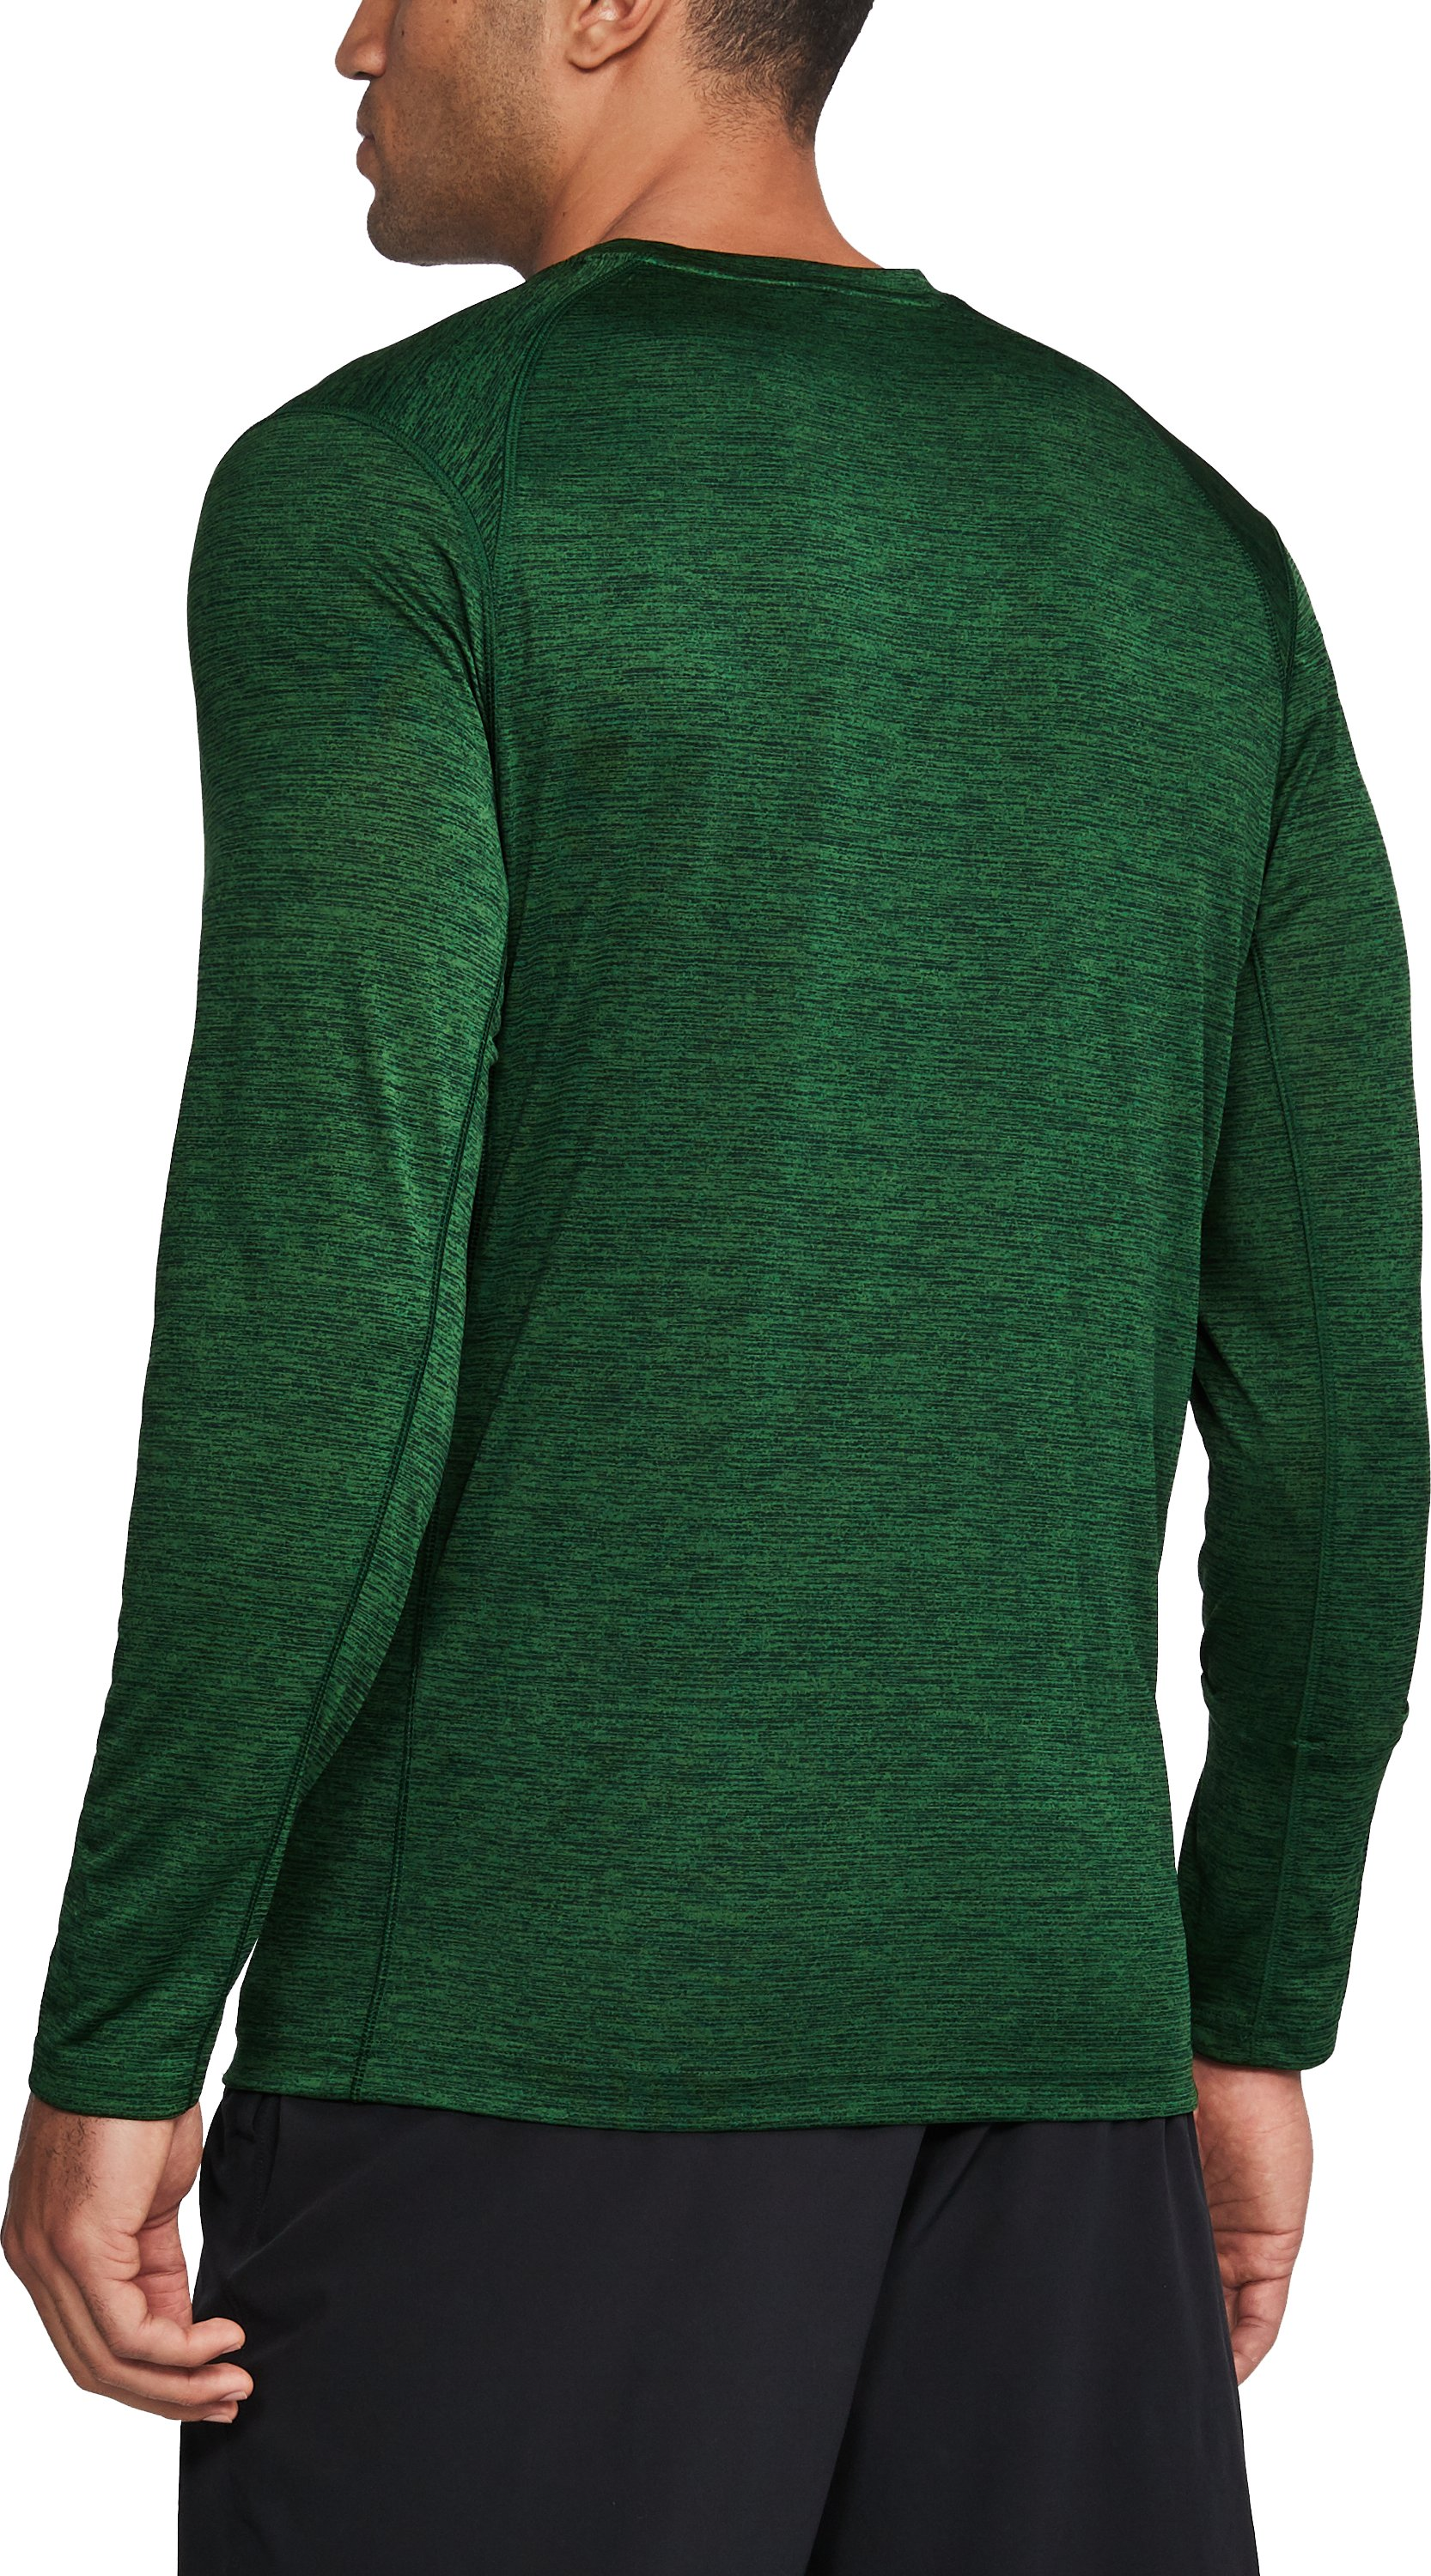 Men's South Florida Long Sleeve Training T-Shirt, Forest Green,